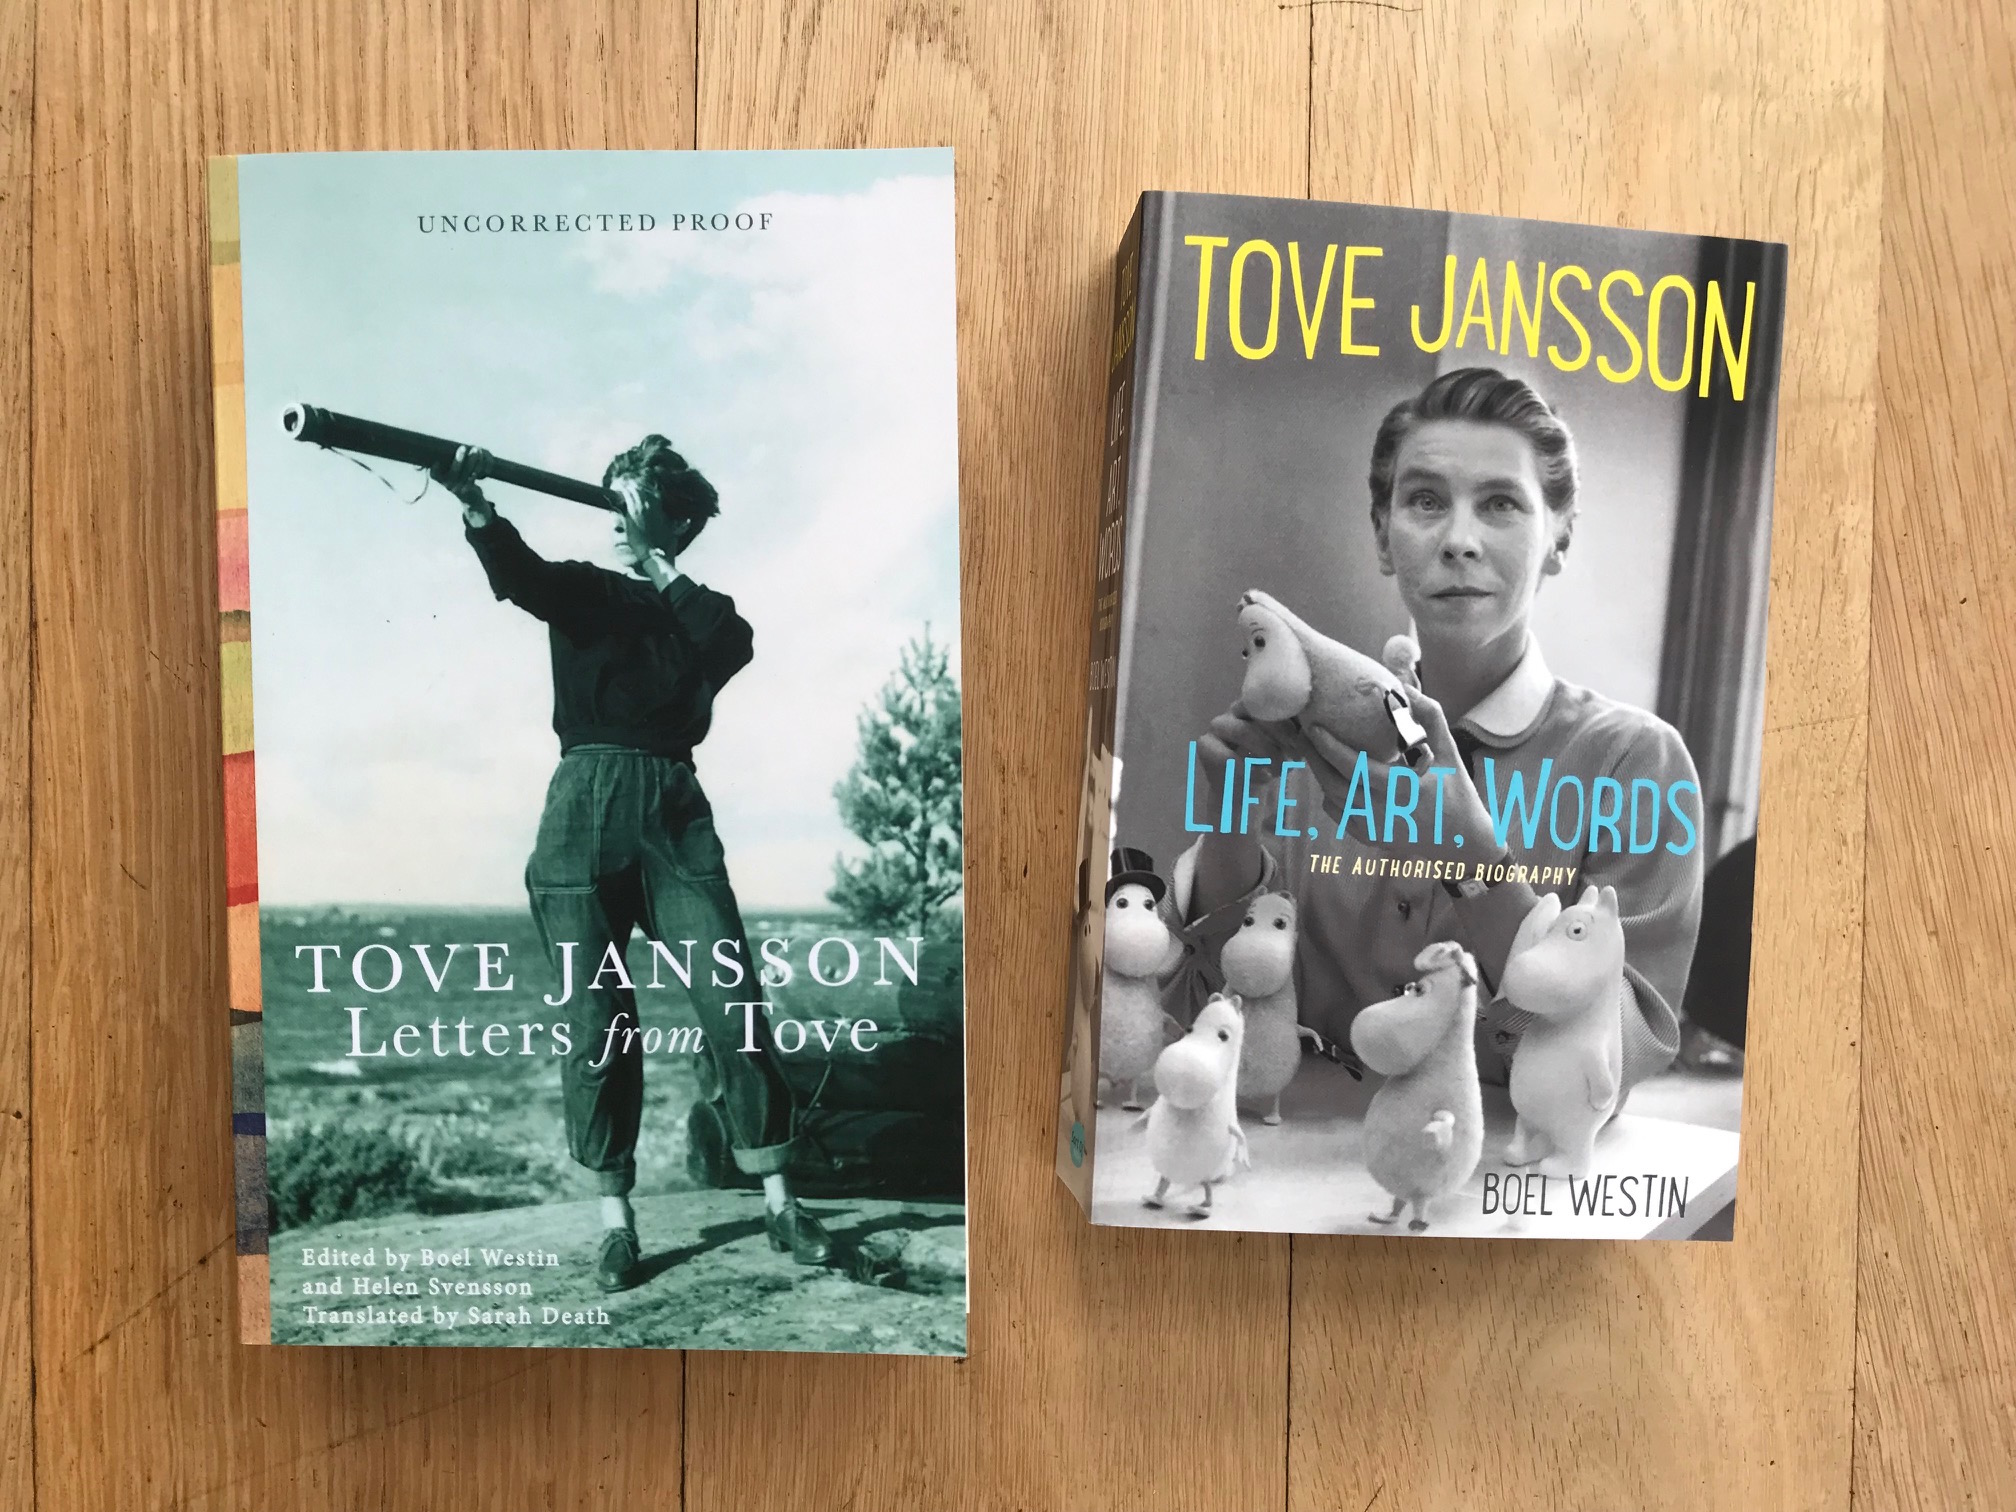 Tove Jansson's letters and biography - The only authorised biography of Tove Jansson written, with unique access to her personal archive, by her trusted friend Boel Westin. Out in paperback.